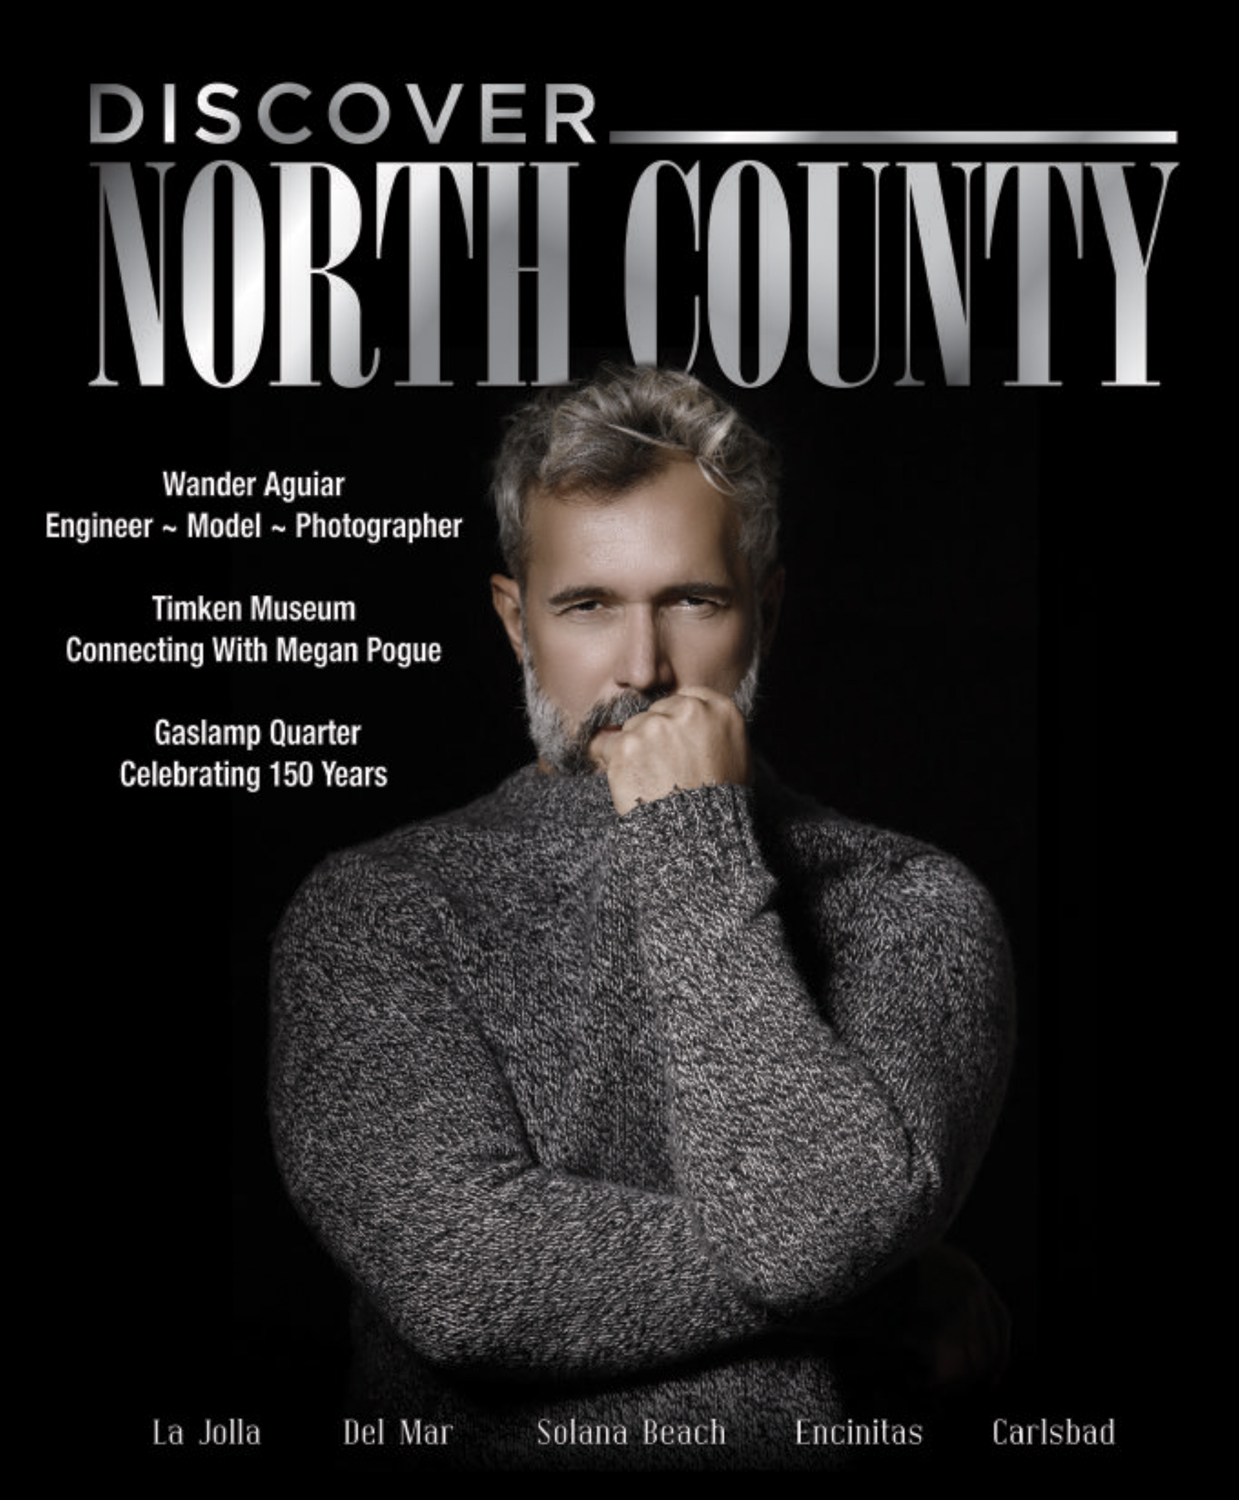 DISCOVER-NORTH-COUNTY-ZINK-MANAGEMENT.jpg